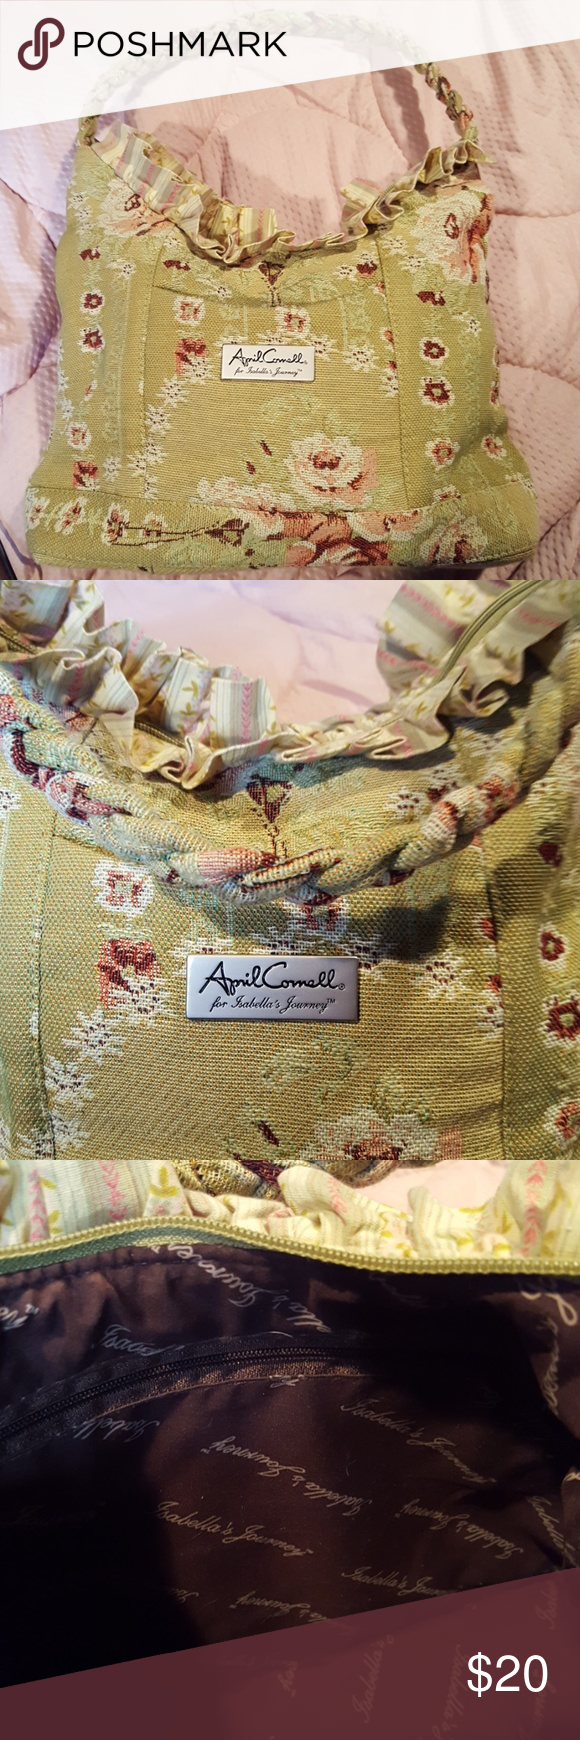 823578651f April Cornell Isabella s Journey Poetry Ruffle Bag Adorable chic floral  tapestry poetry bag by April Cornell